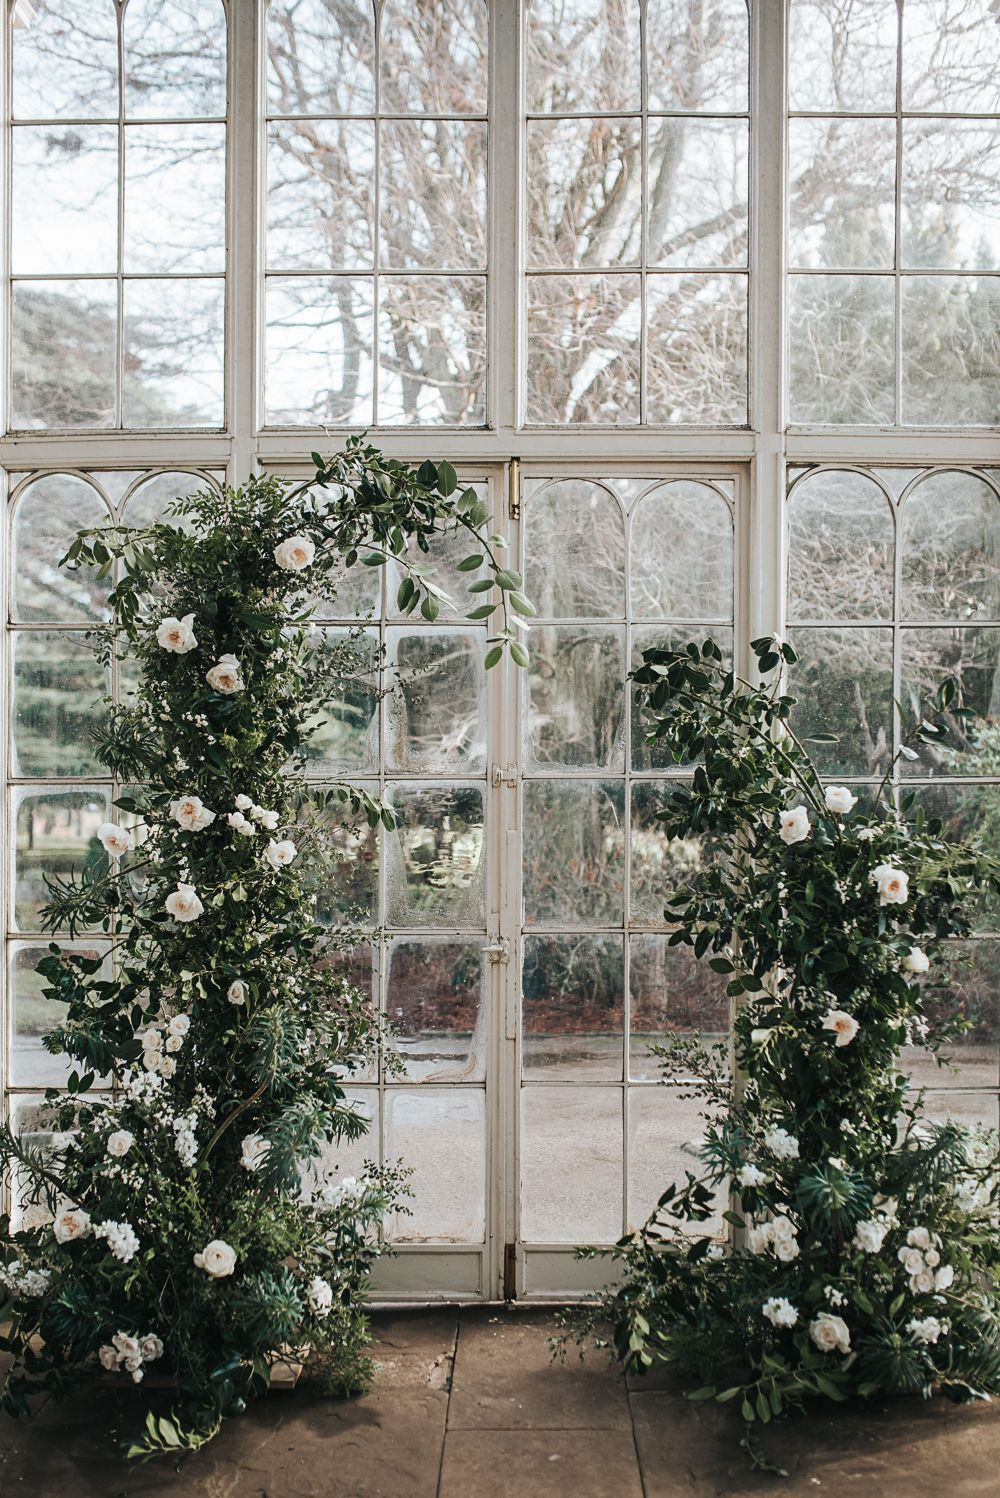 Wollaton Hall Wedding Intimate Romantic & Wintry Glass House Incredible Flower Arch | Whimsical Wonderland Weddings